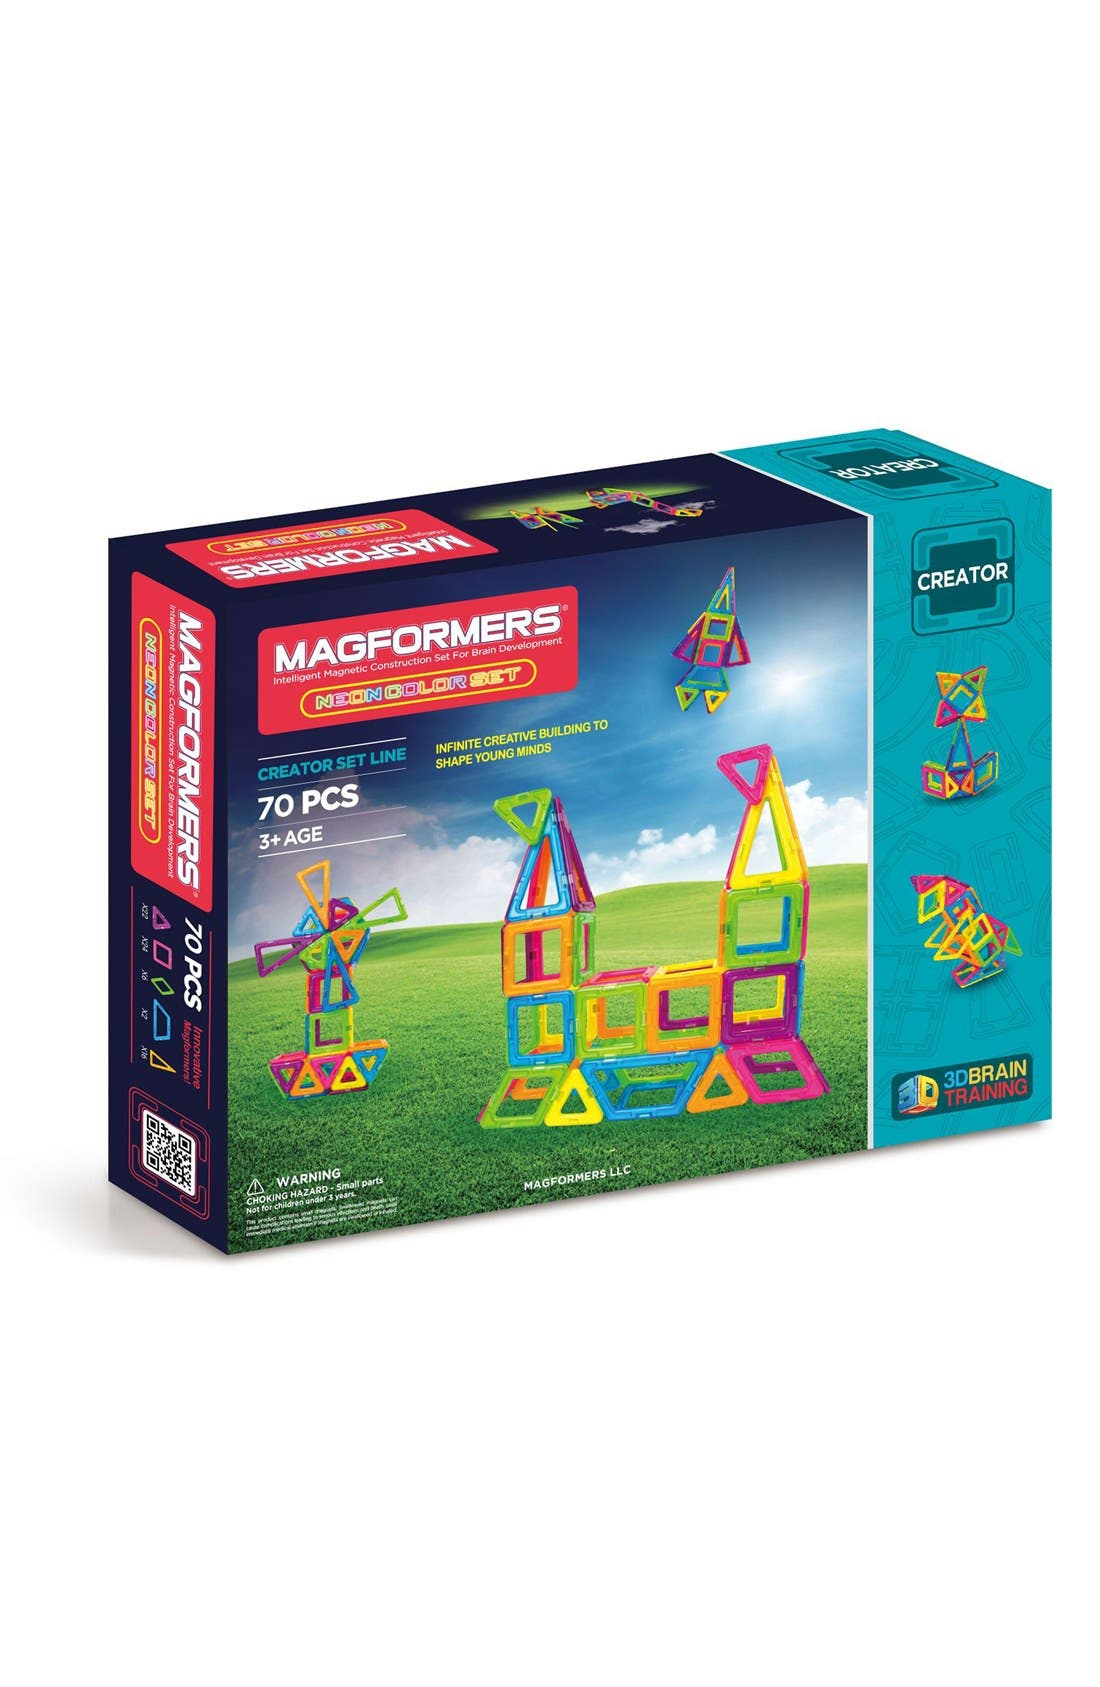 MAGFORMERS 'Creator' Neon Magnetic 3D Construction Set